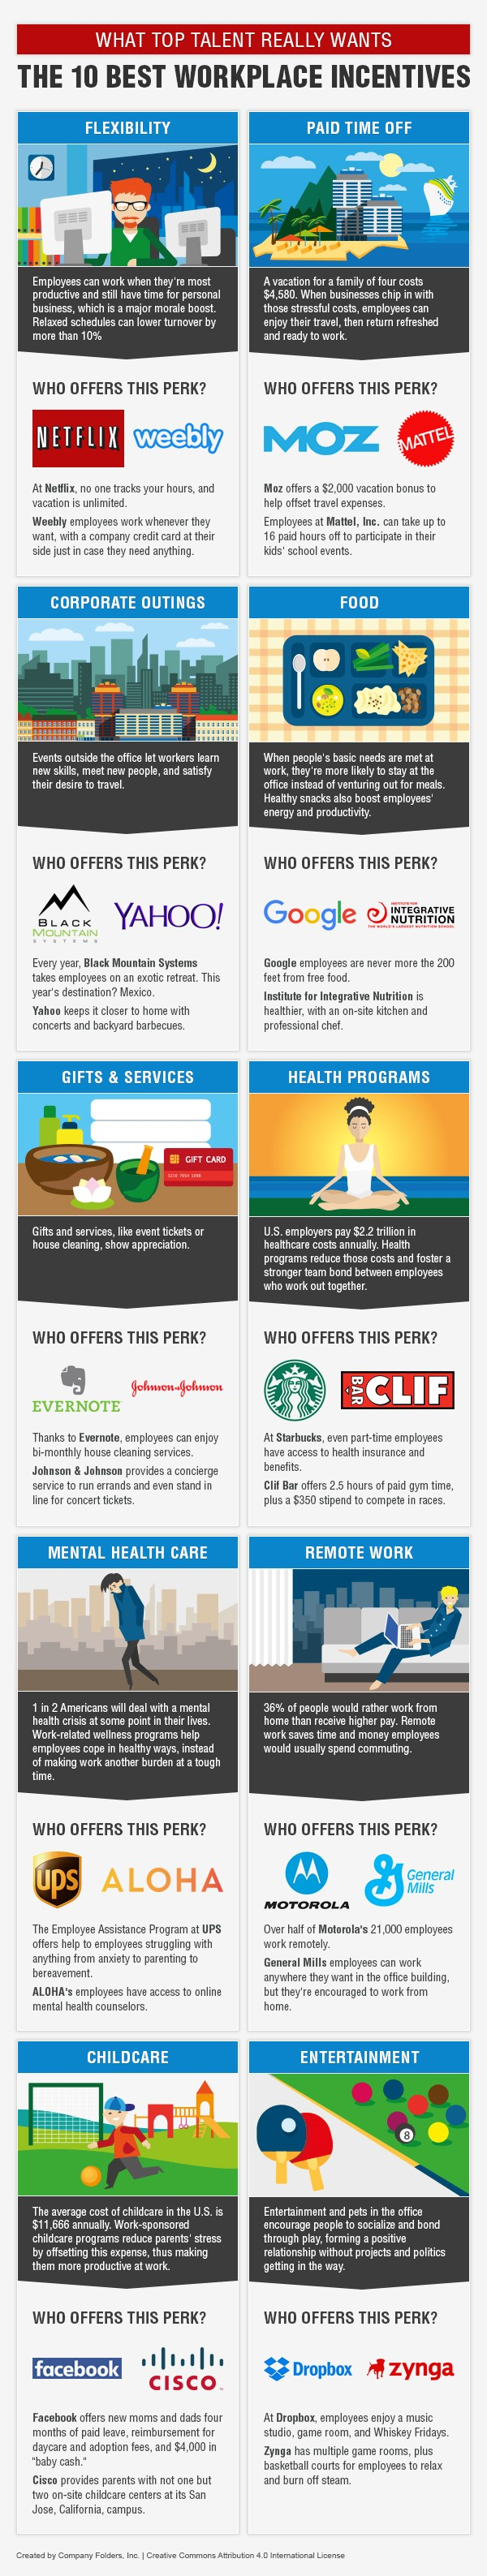 10-best-workplace-incentives